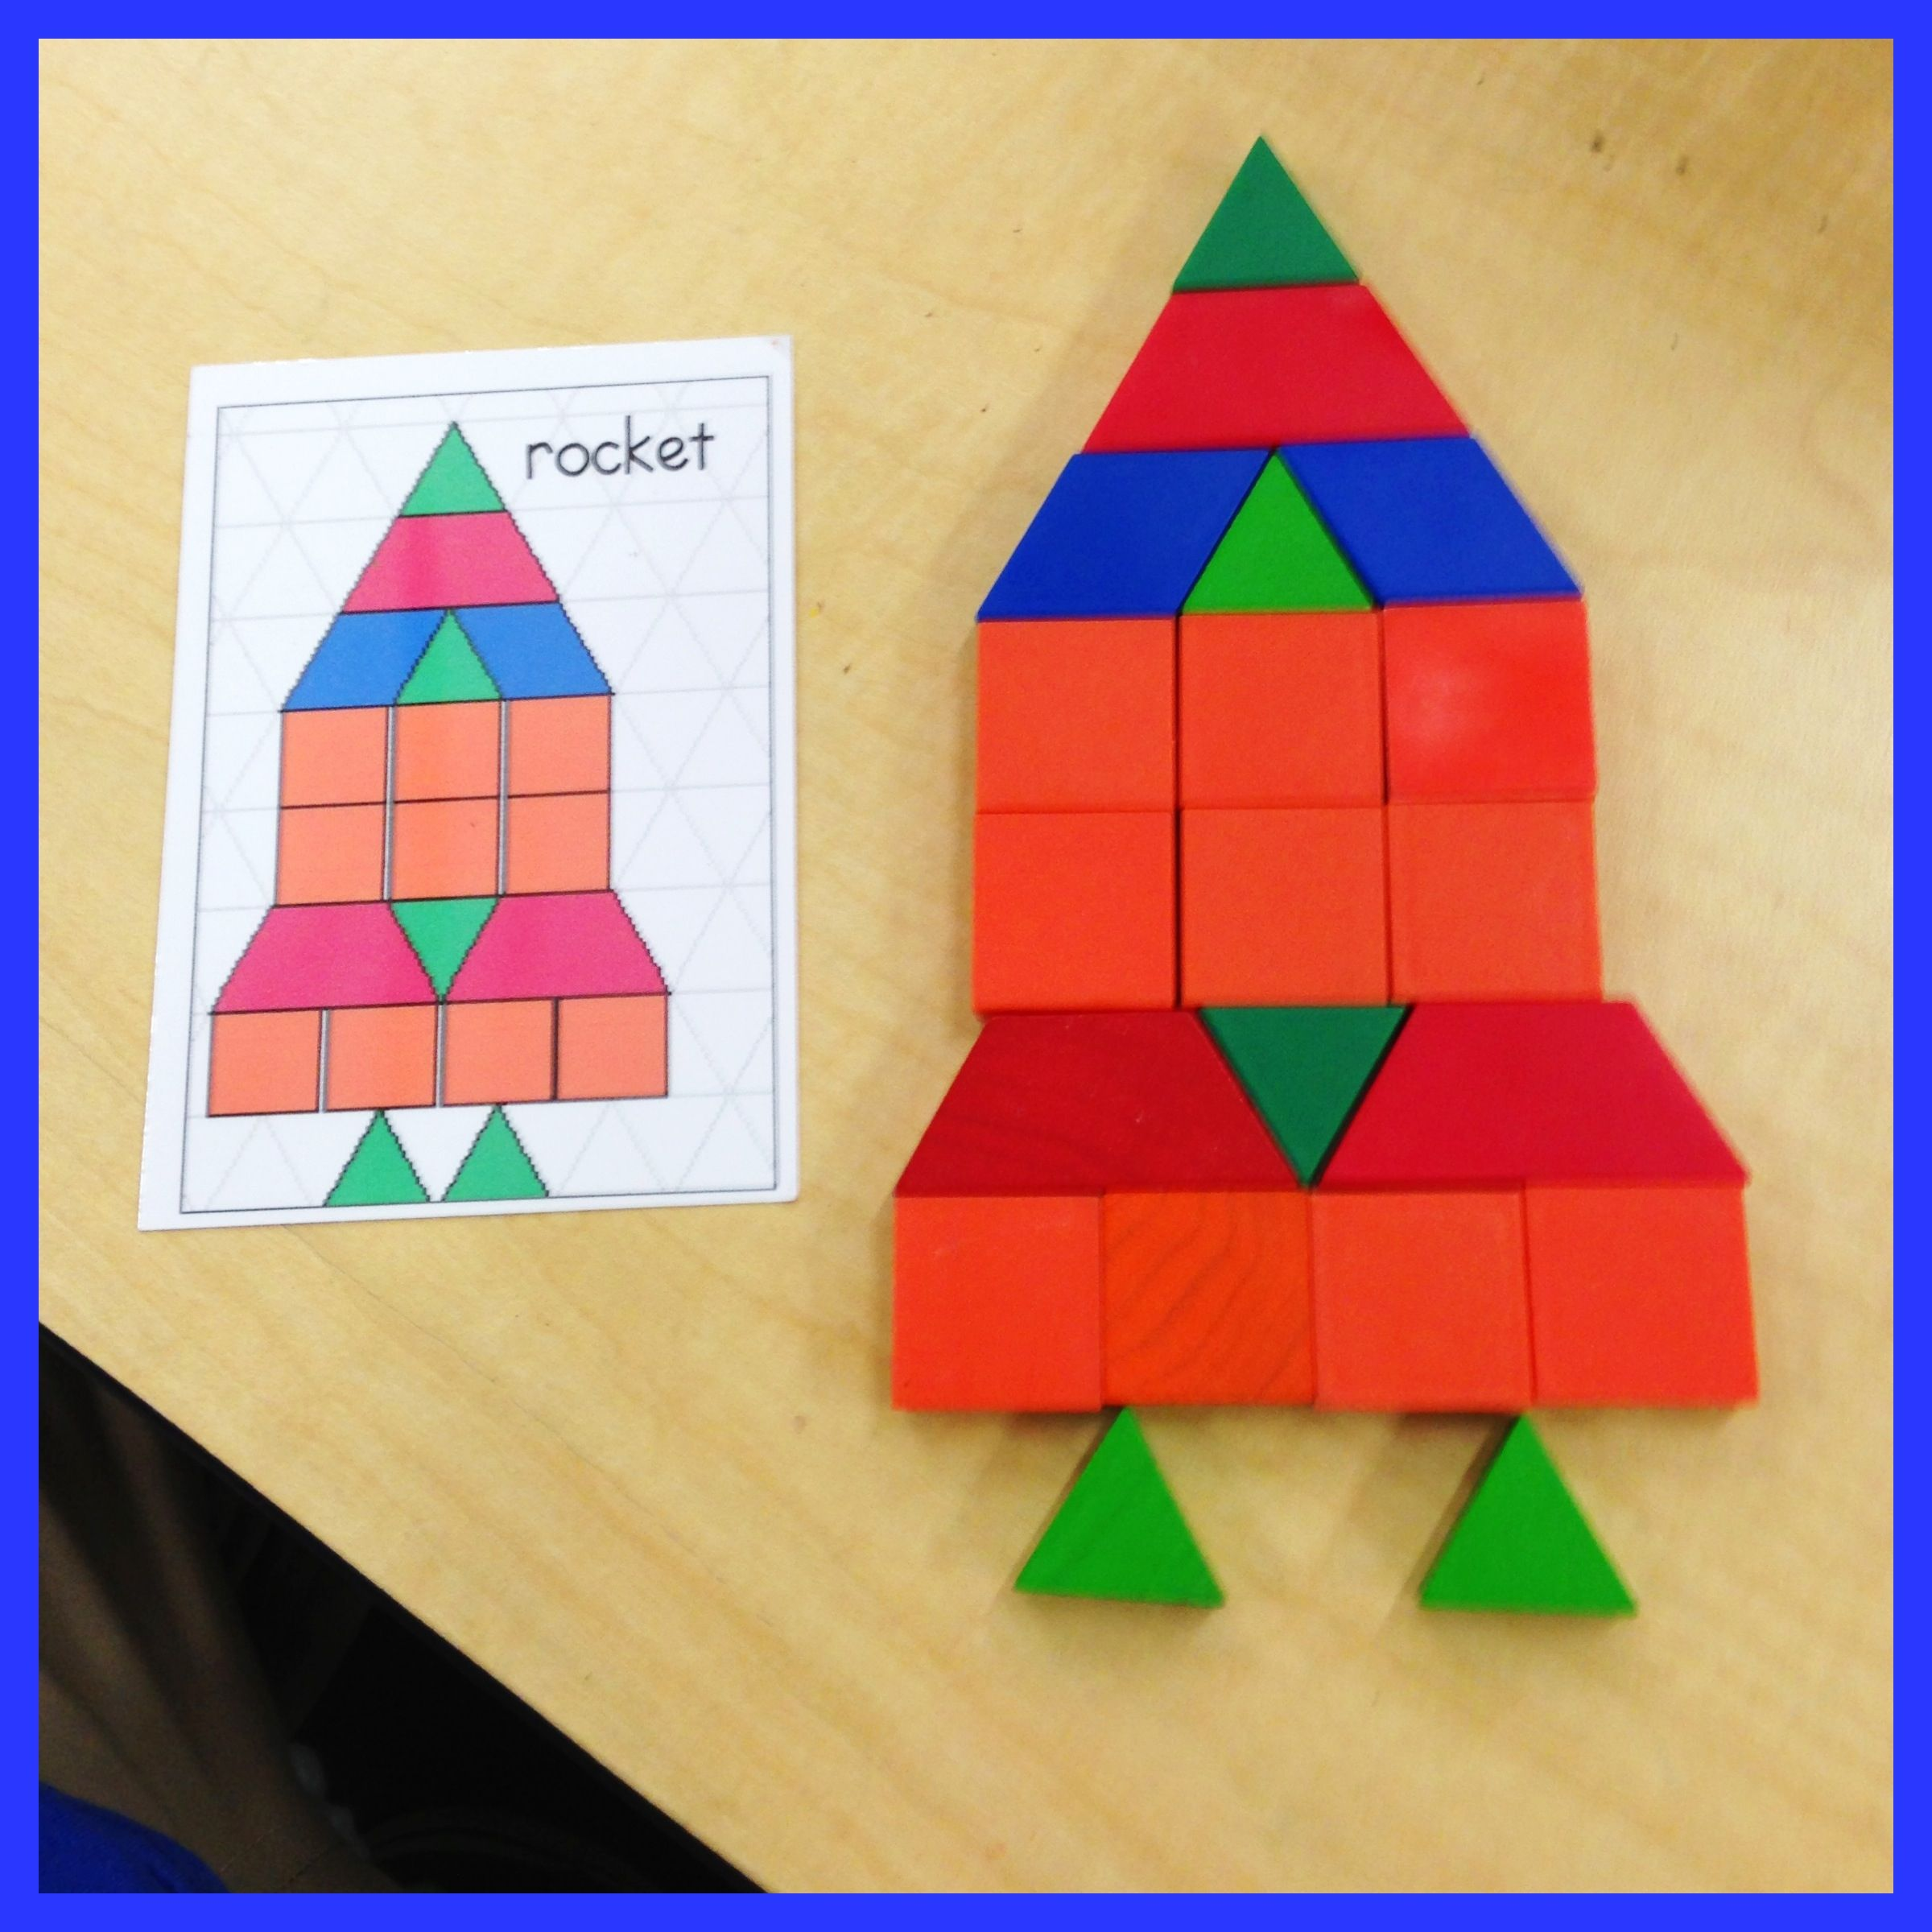 Construct Using Basic Shapes Amp Spatial Reasoning To Model Objects In The Environment